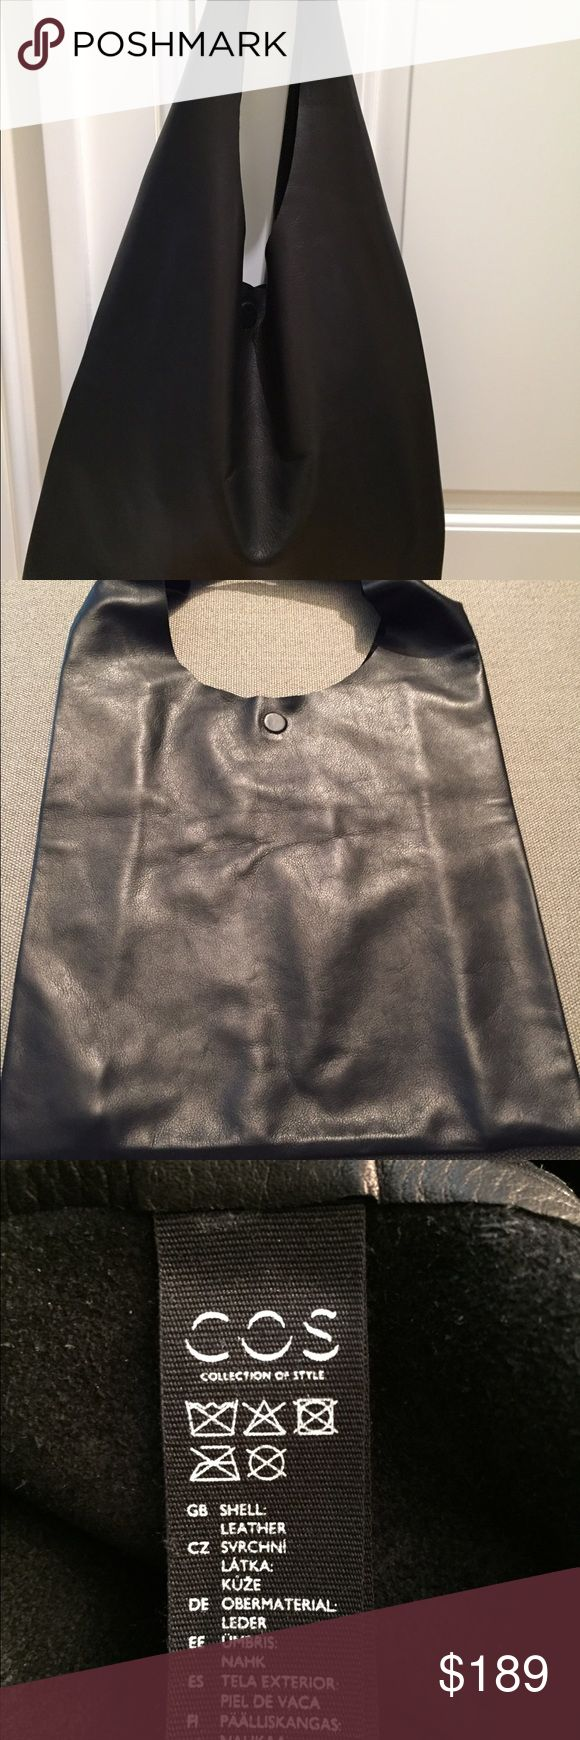 """COS Unstructured Shopper Bag, black leather Made from soft leather with a subtle grained finish, this large leather bag has a single unlined compartment and a magnetic button fastening. A casual style, it can be held by the handles or worn over the shoulder. 14 1/2"""" x 14 1/2"""".  100% leather. COS Bags Totes"""